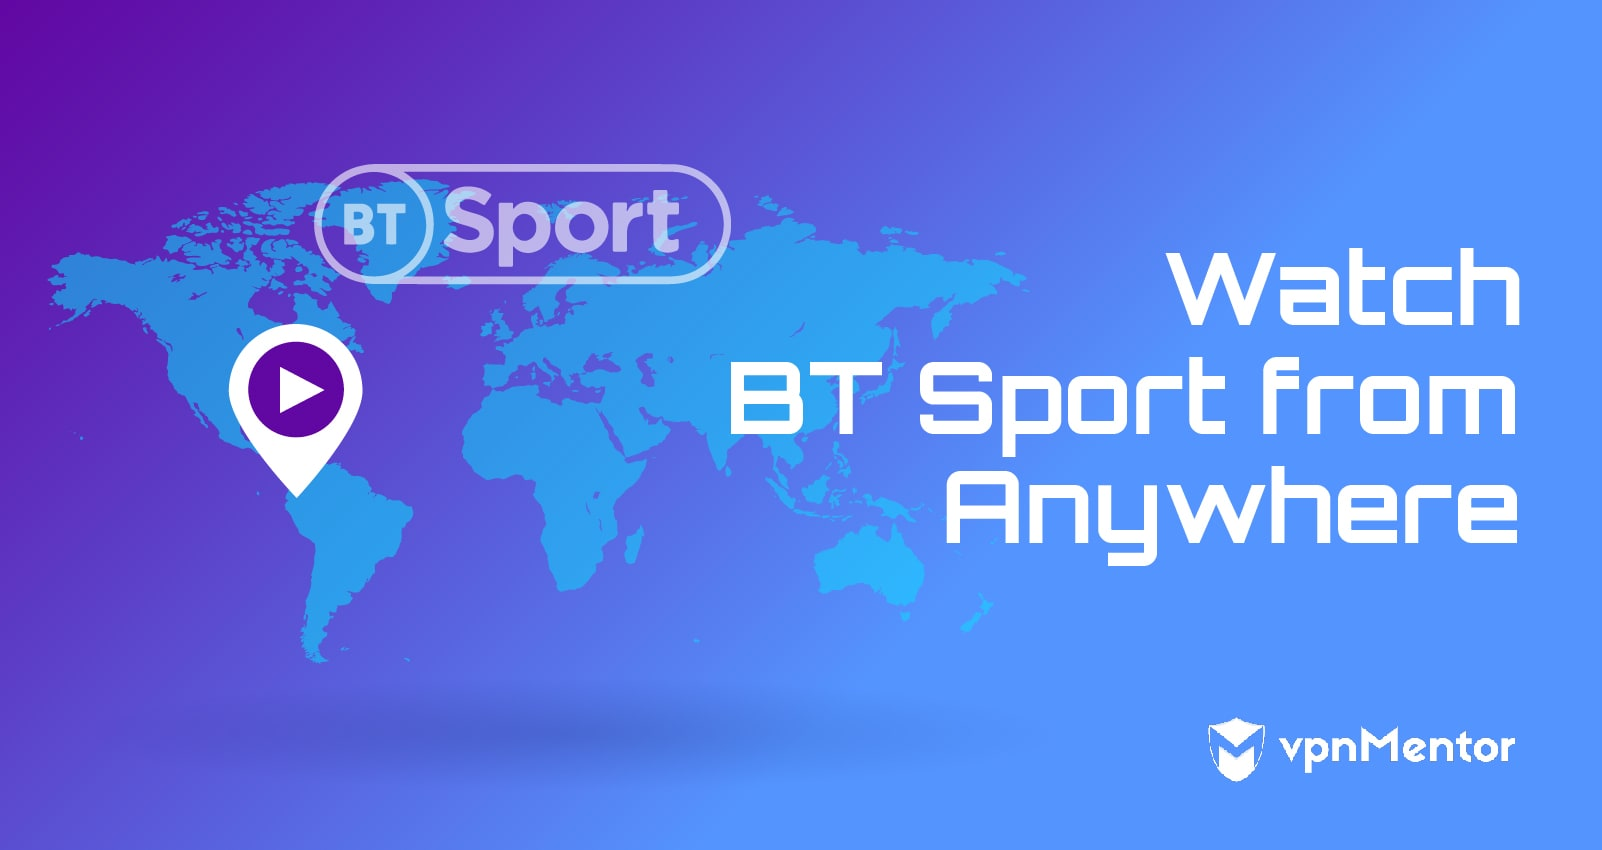 Watch BT Sport from Anywhere